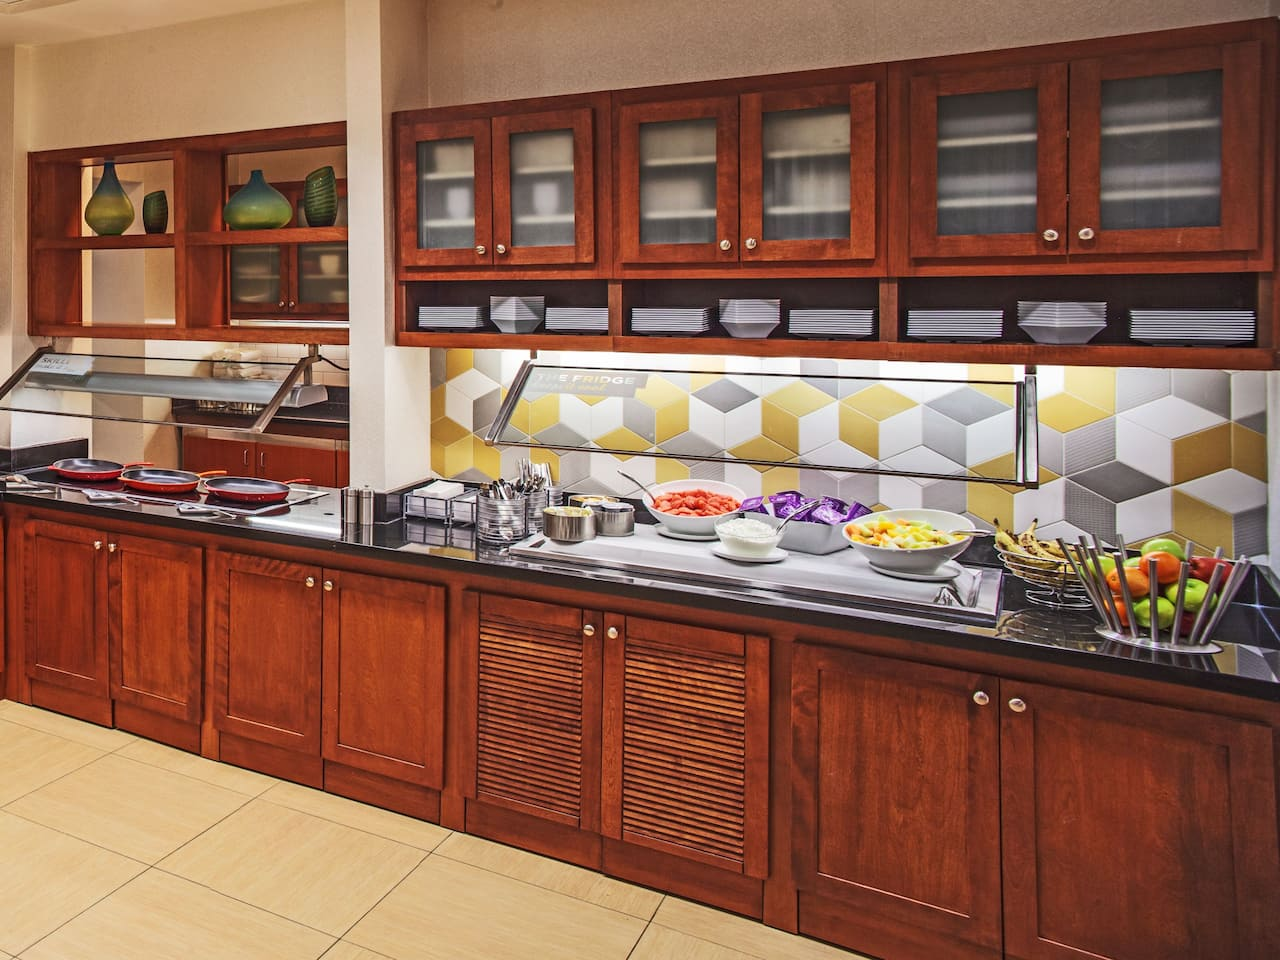 Hyatt Place Cincinnati / Blue Ash Kitchen Buffet